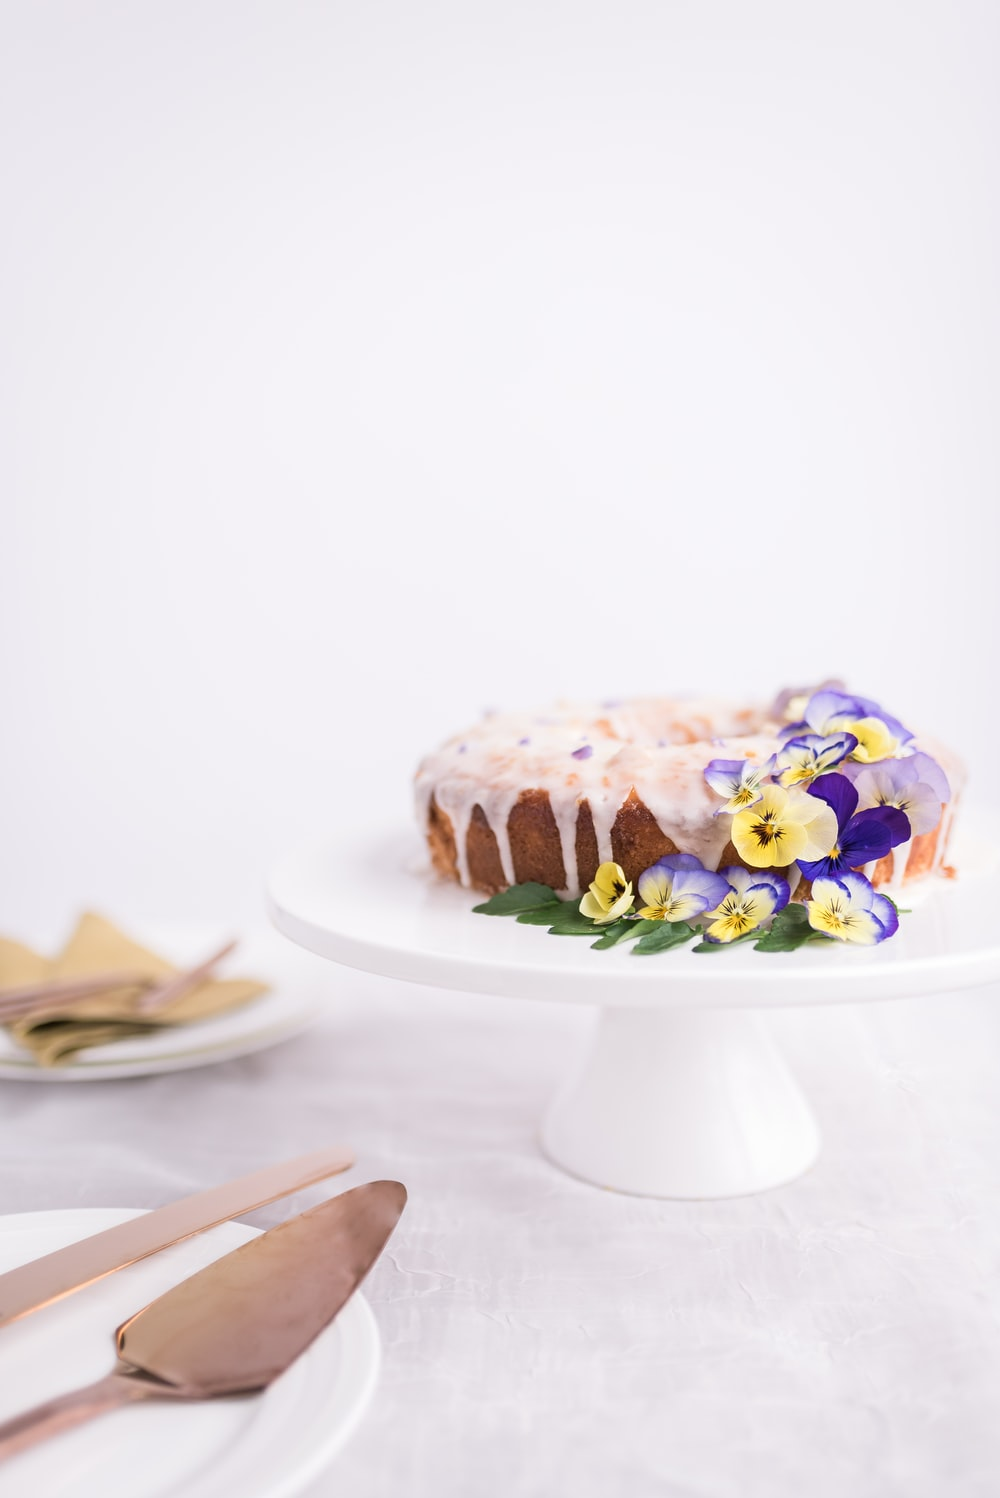 cake on ceramic footed plate